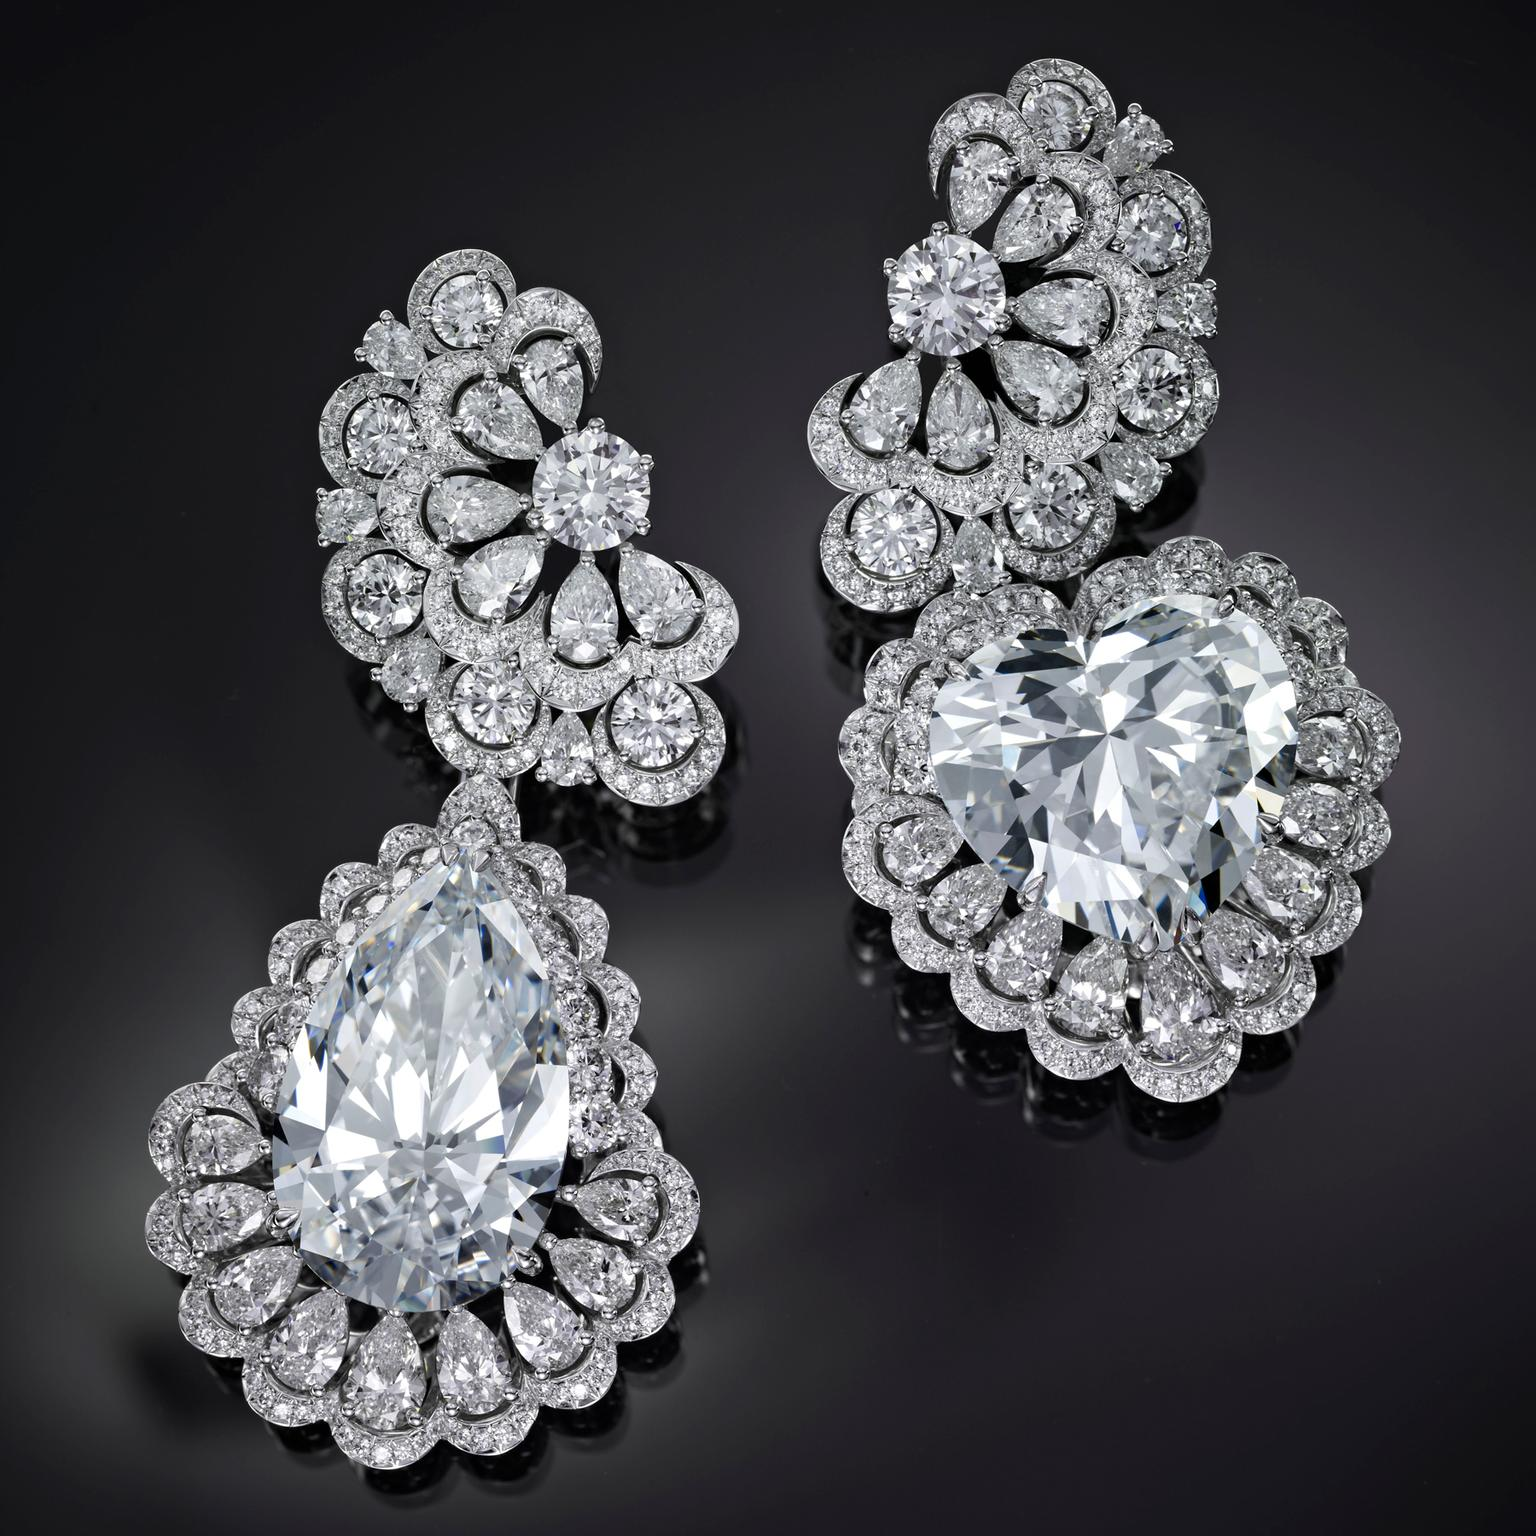 Chopard The Garden of Kalahari diamond earrings